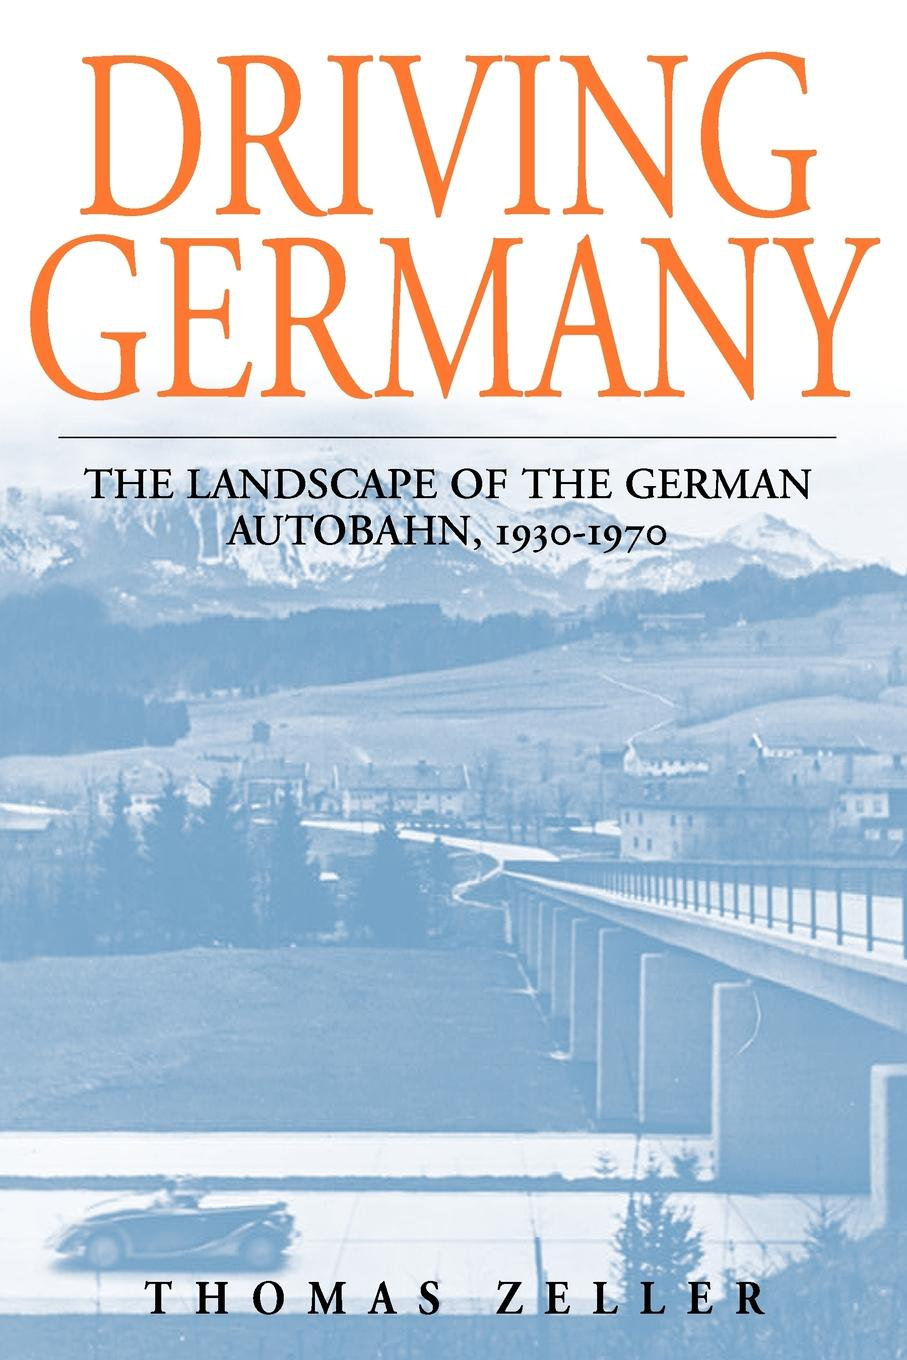 Thomas Zeller Driving Germany. The Landscape of the German Autobahn, 1930-1970